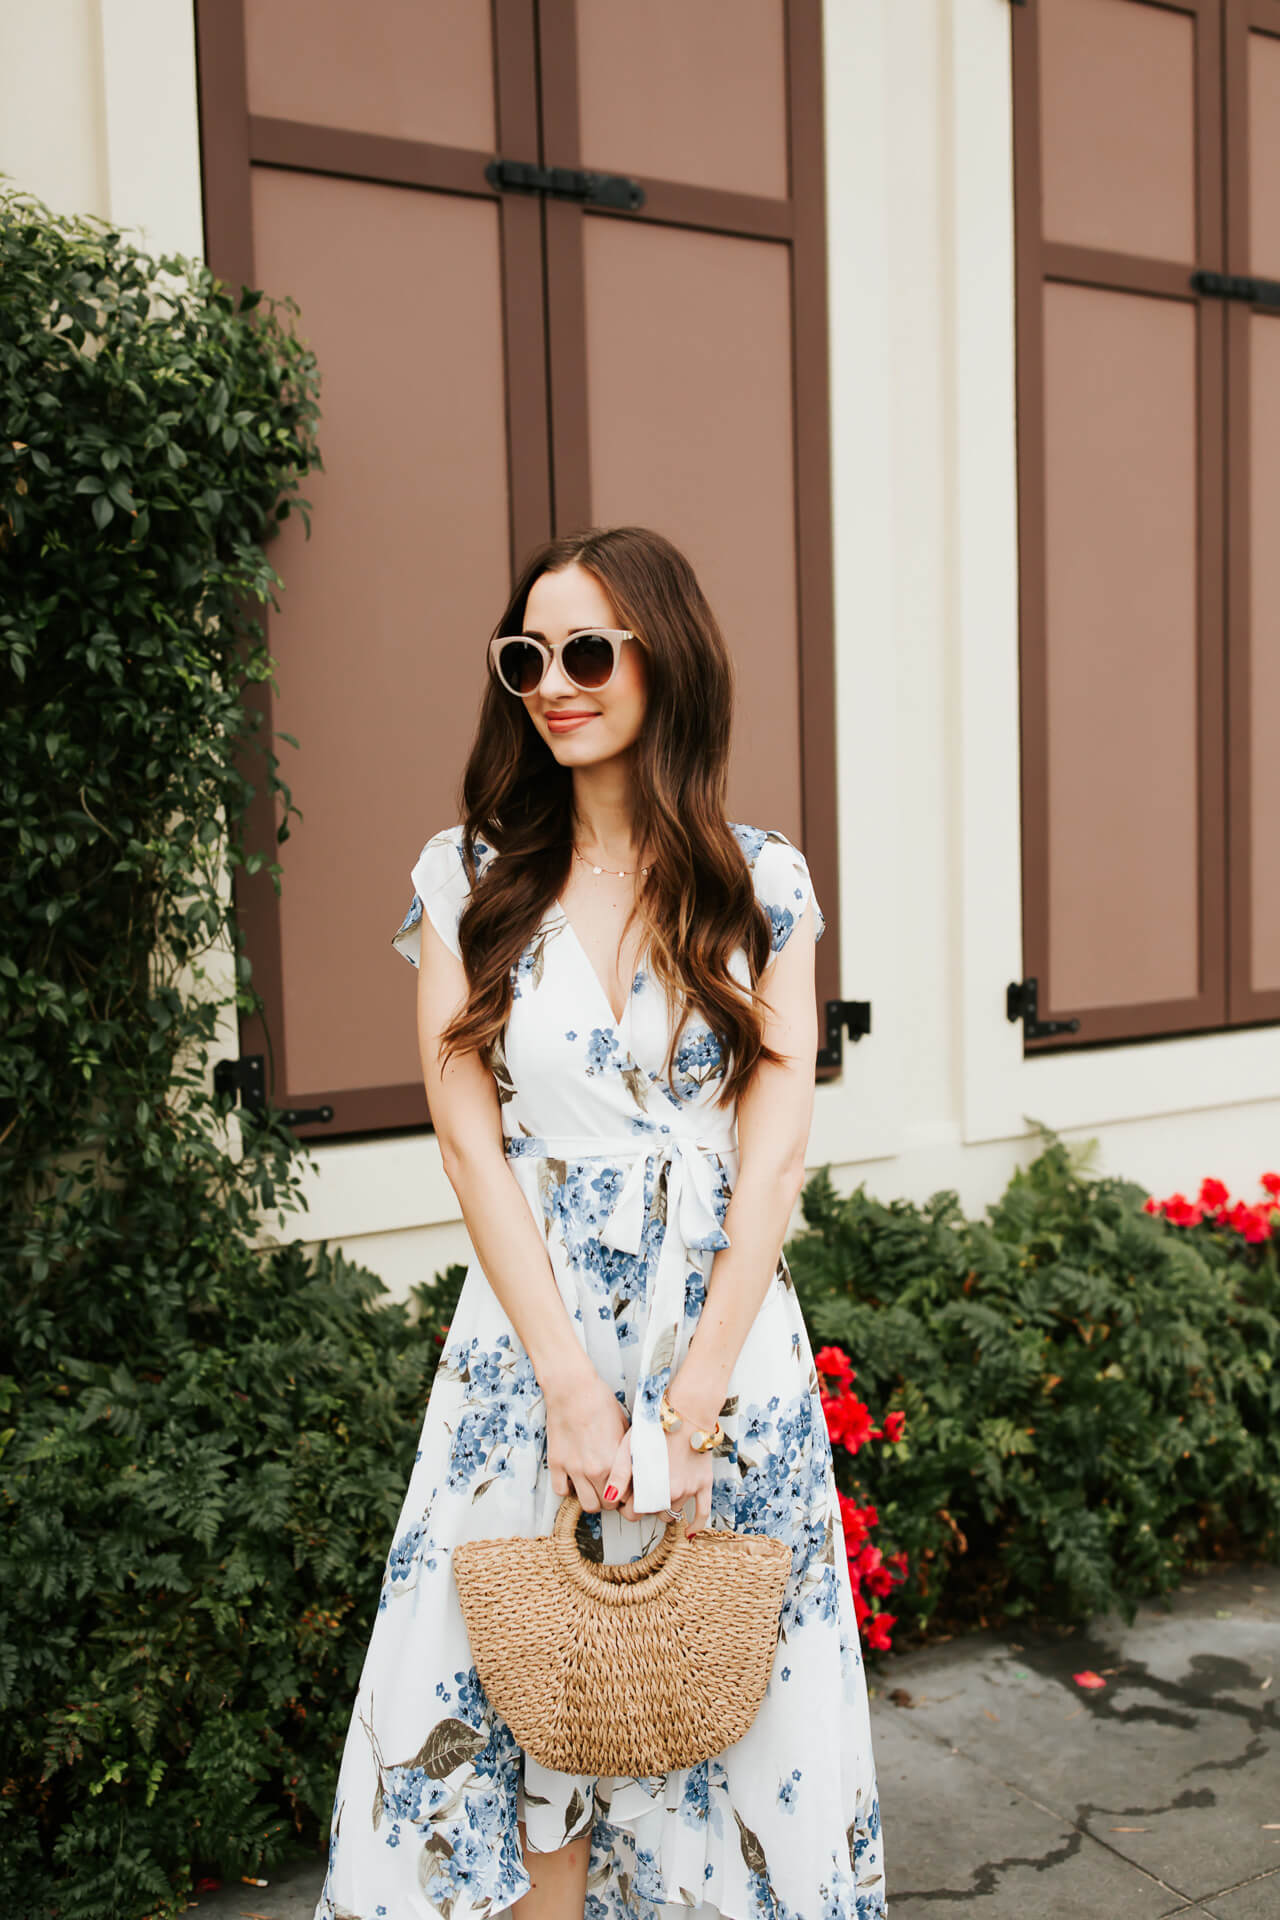 styling a blue floral maxi dress for spring - M Loves M @marmar